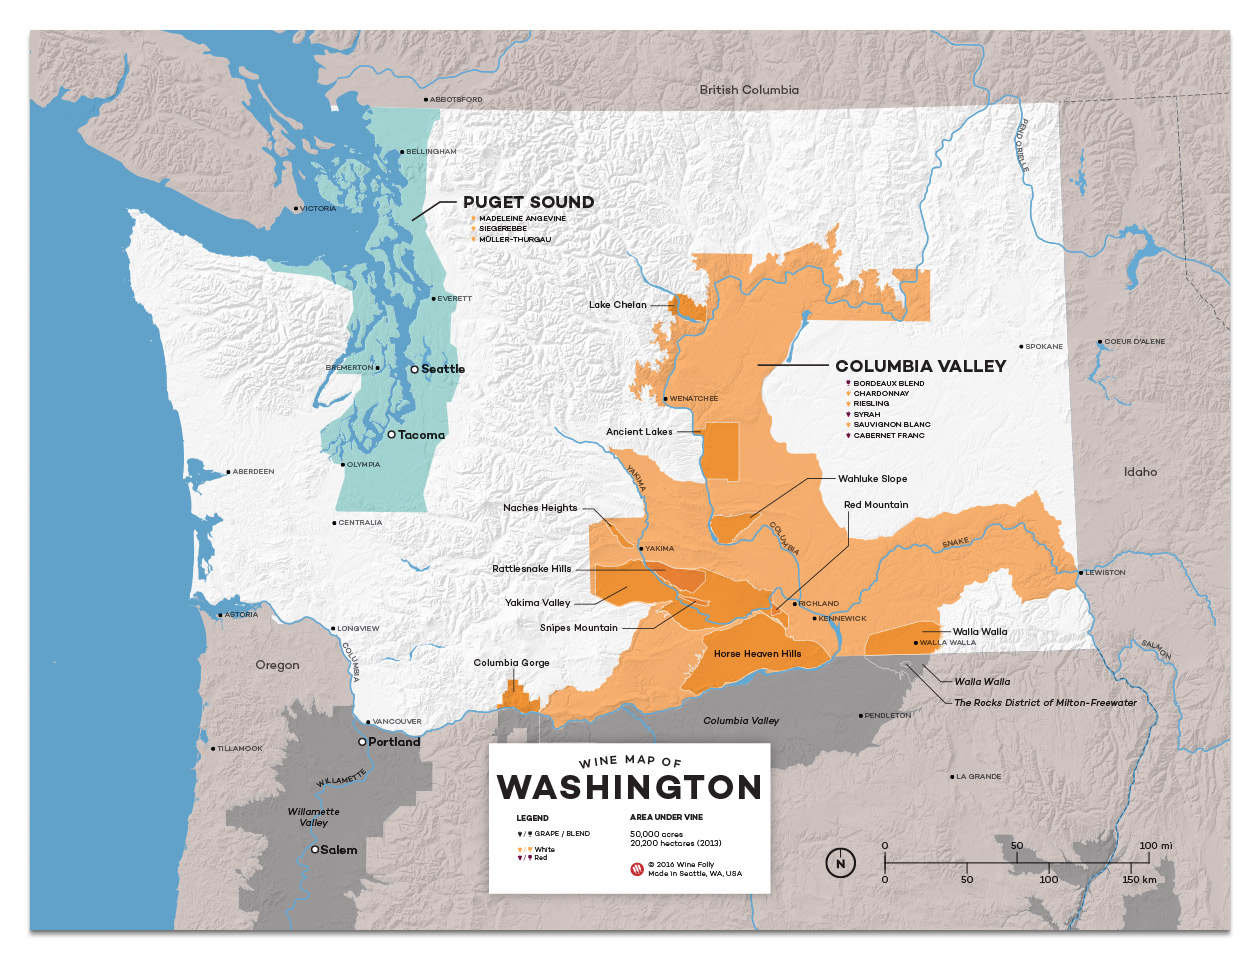 Wine Regions of Washington Regional Map by Wine Folly - 12x16